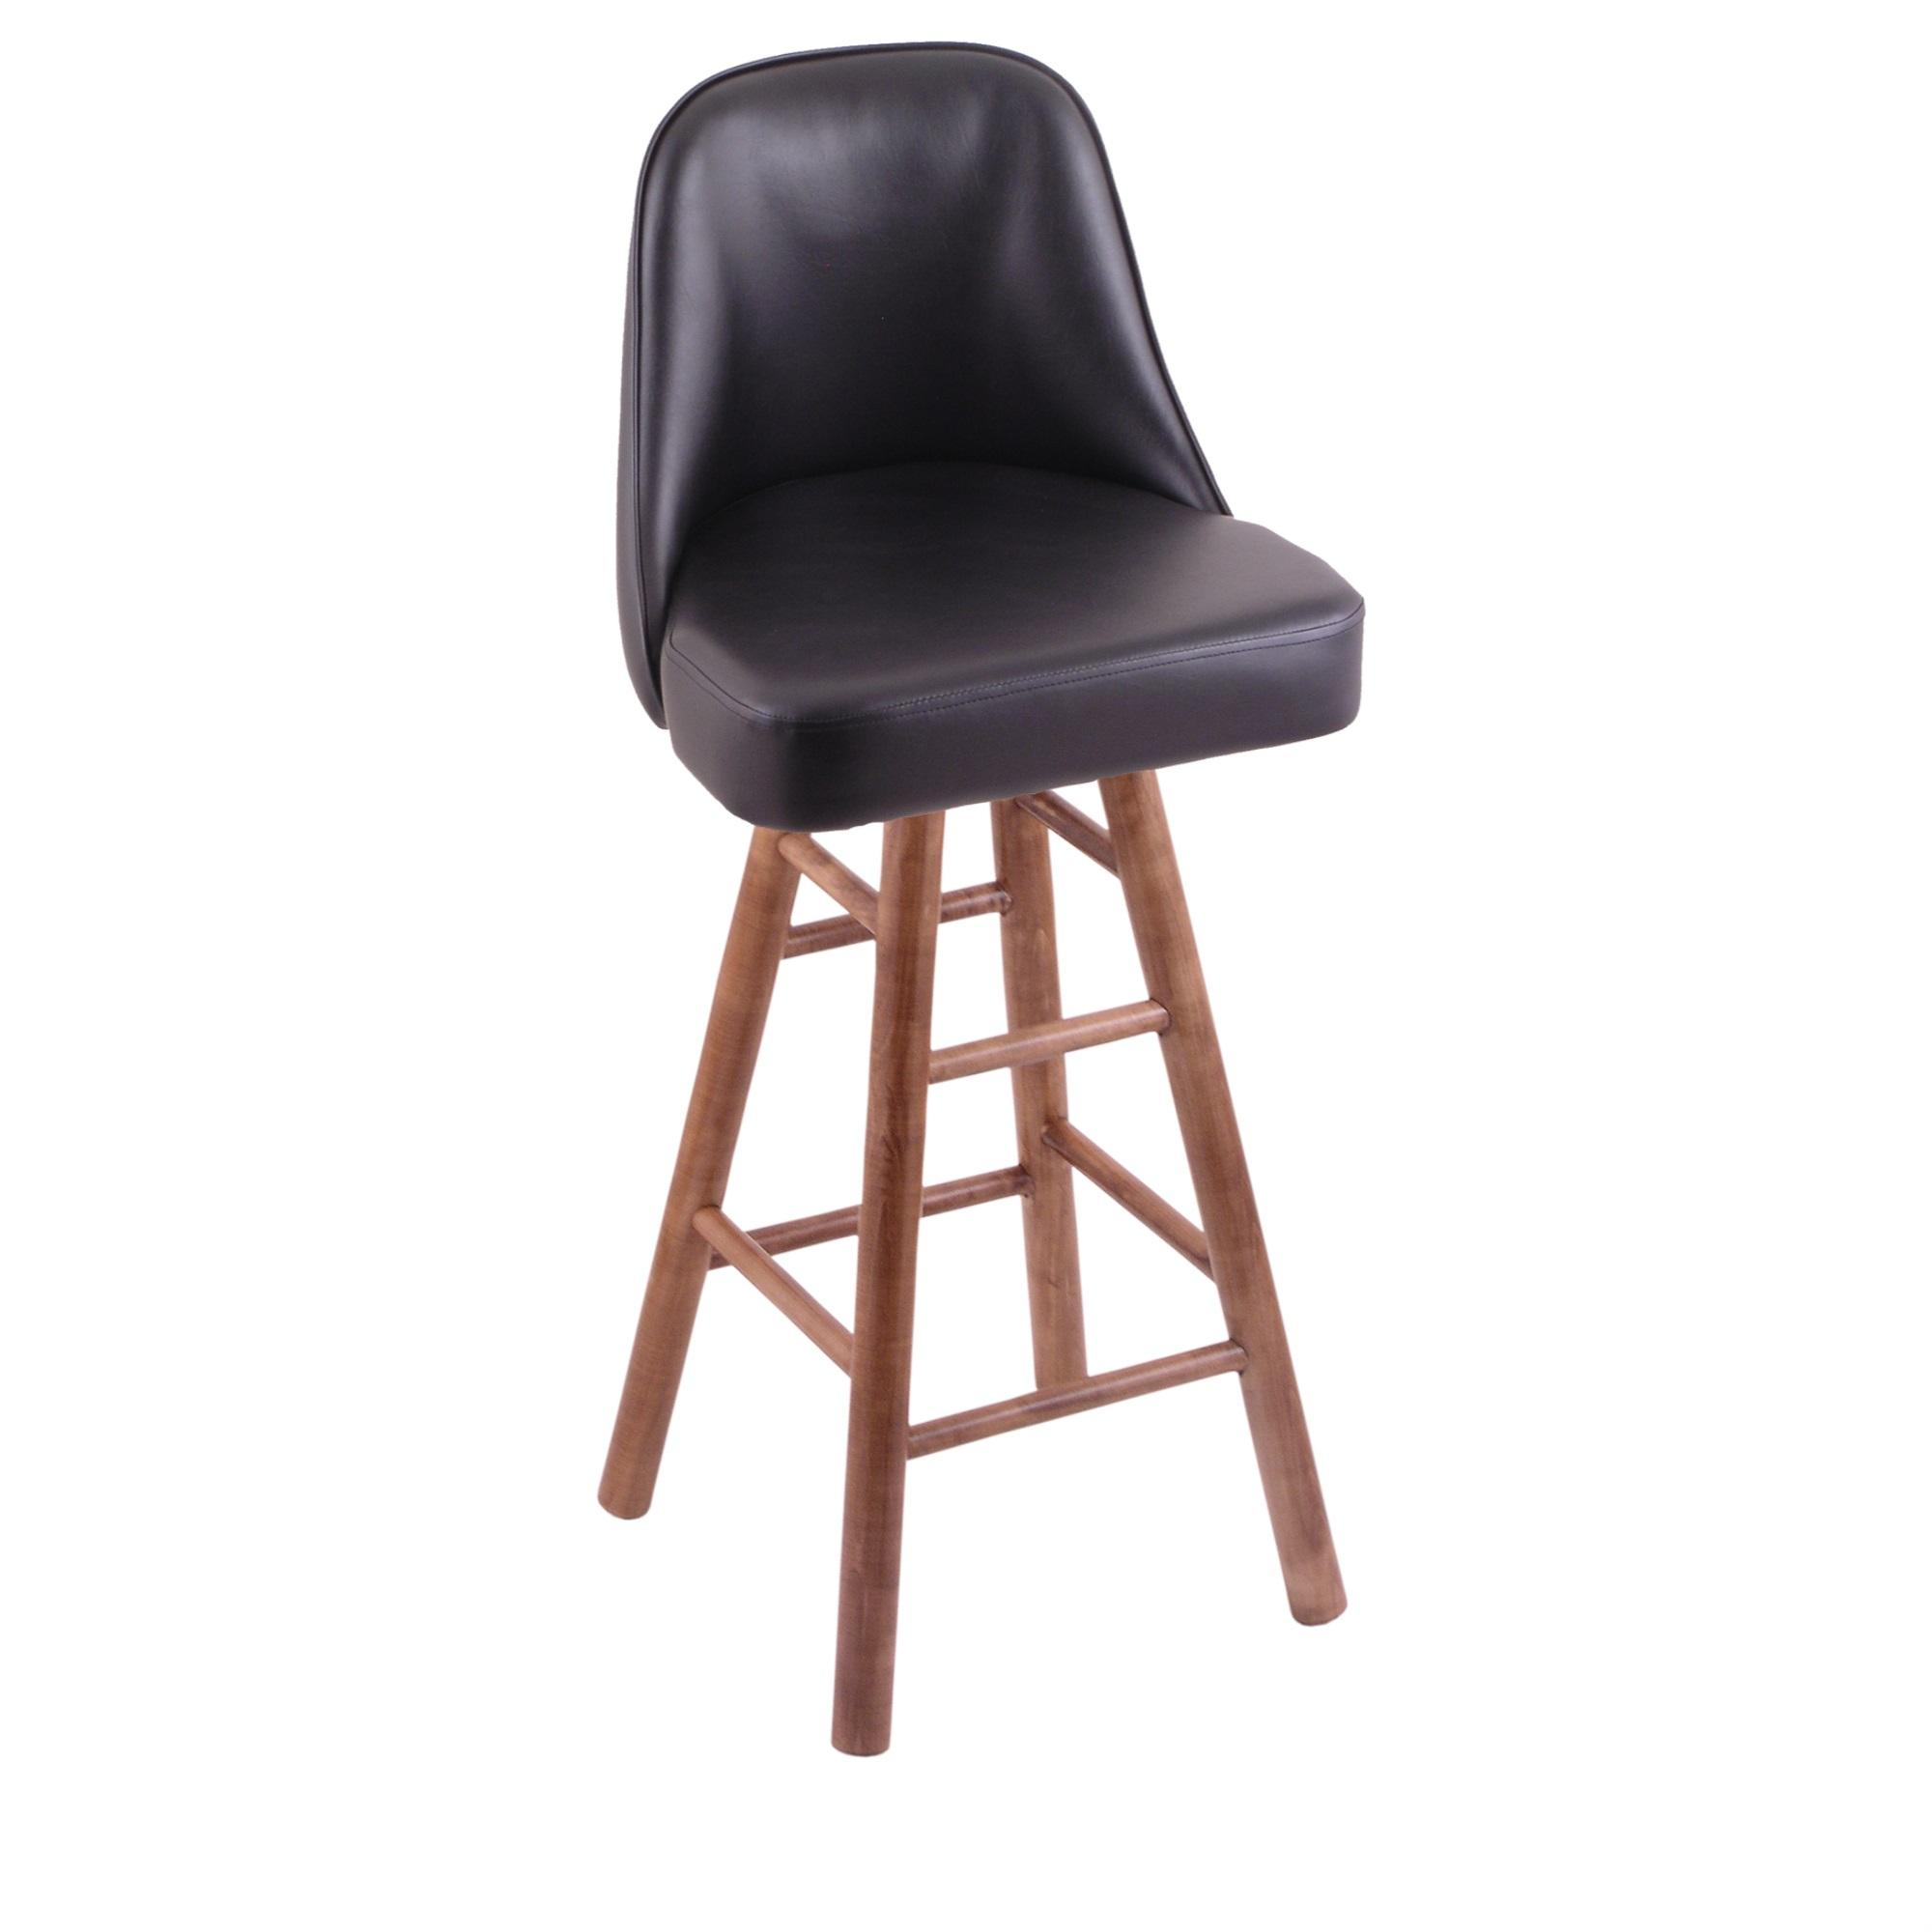 Grizzly Counter Stool with Smooth Maple Legs, Medium Finish, and 360 Swivel